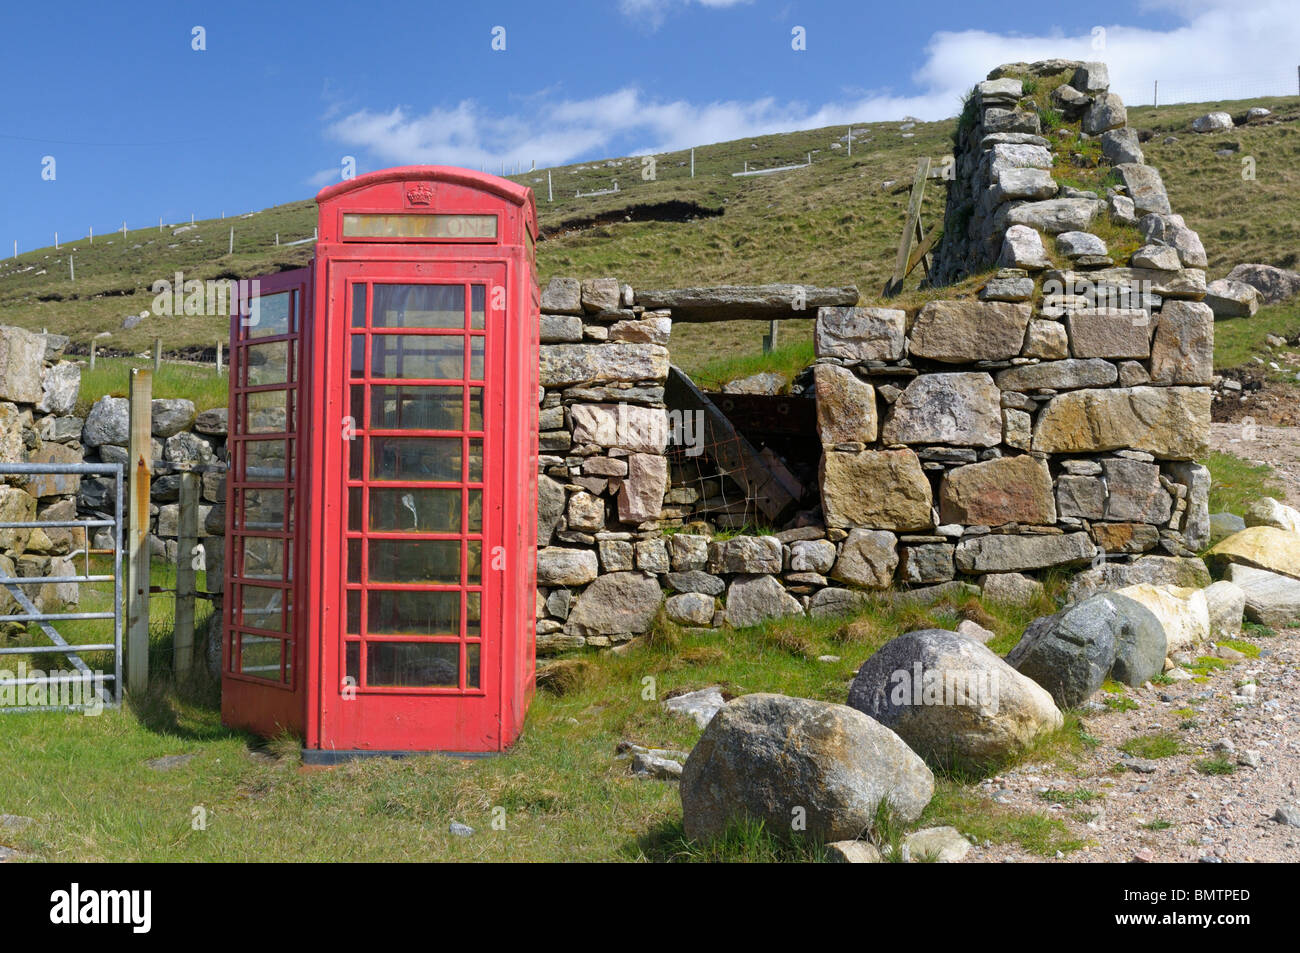 Old style red UK phone box next to a derelict croft house - Stock Image